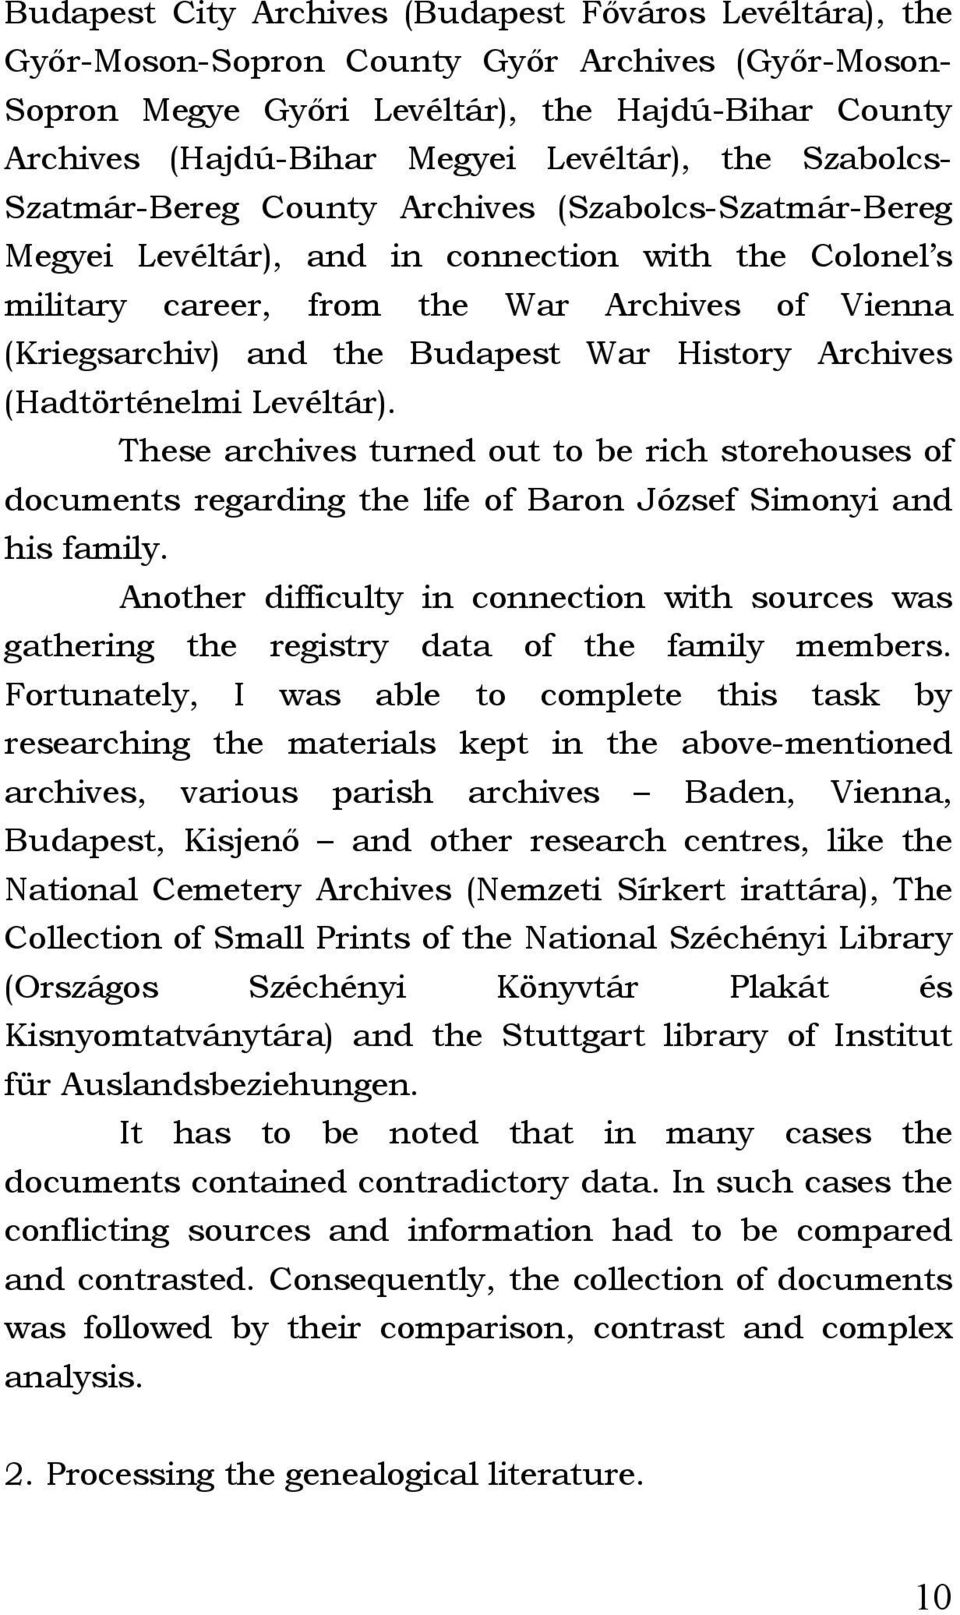 and the Budapest War History Archives (Hadtörténelmi Levéltár). These archives turned out to be rich storehouses of documents regarding the life of Baron József Simonyi and his family.